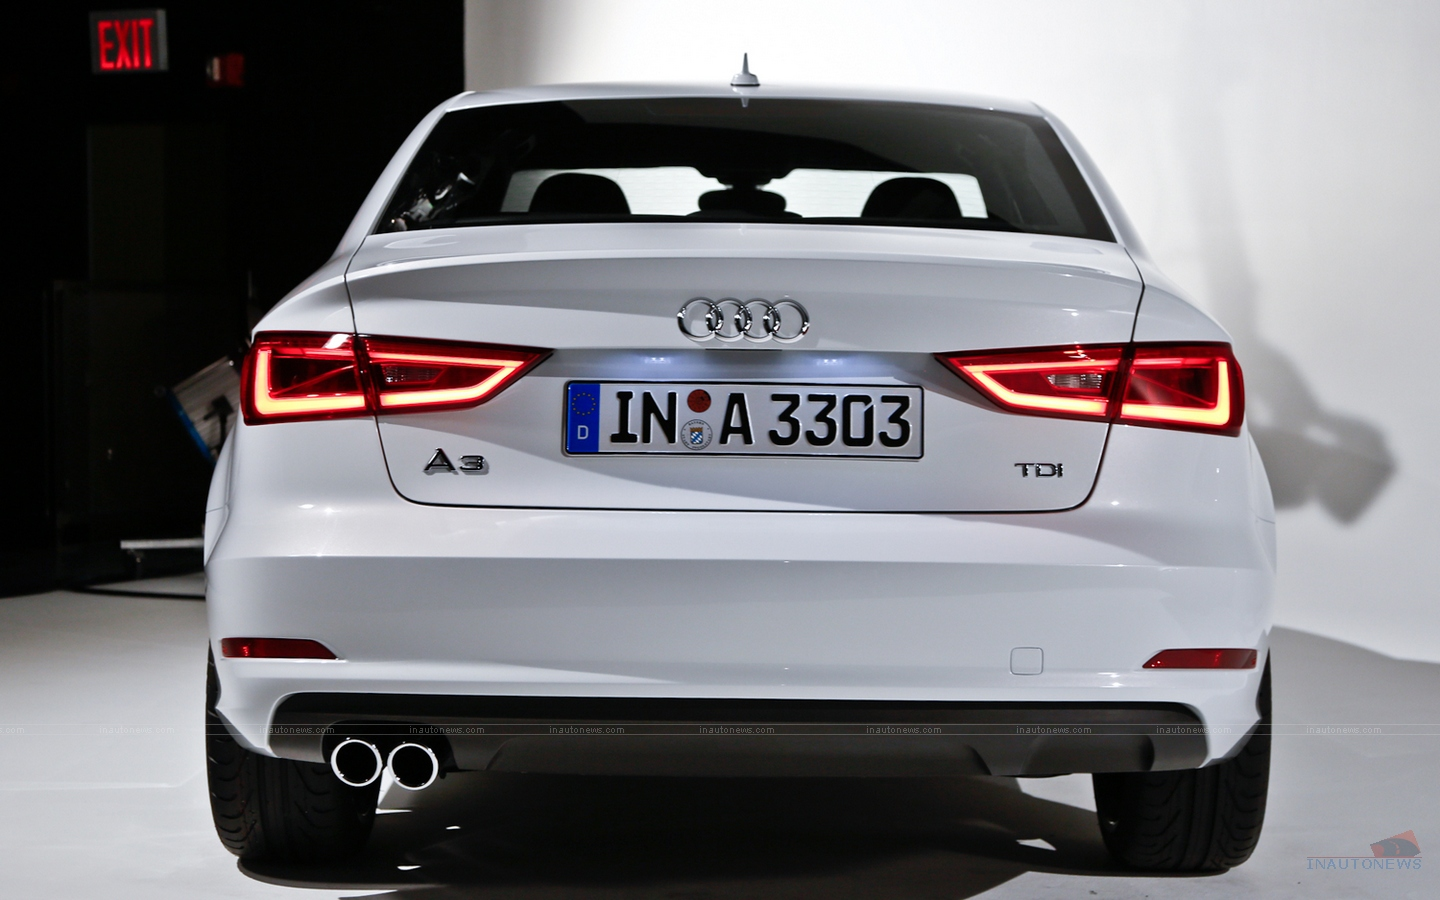 Audi Q7 - Created according to the Audi 2014 tendencies #8